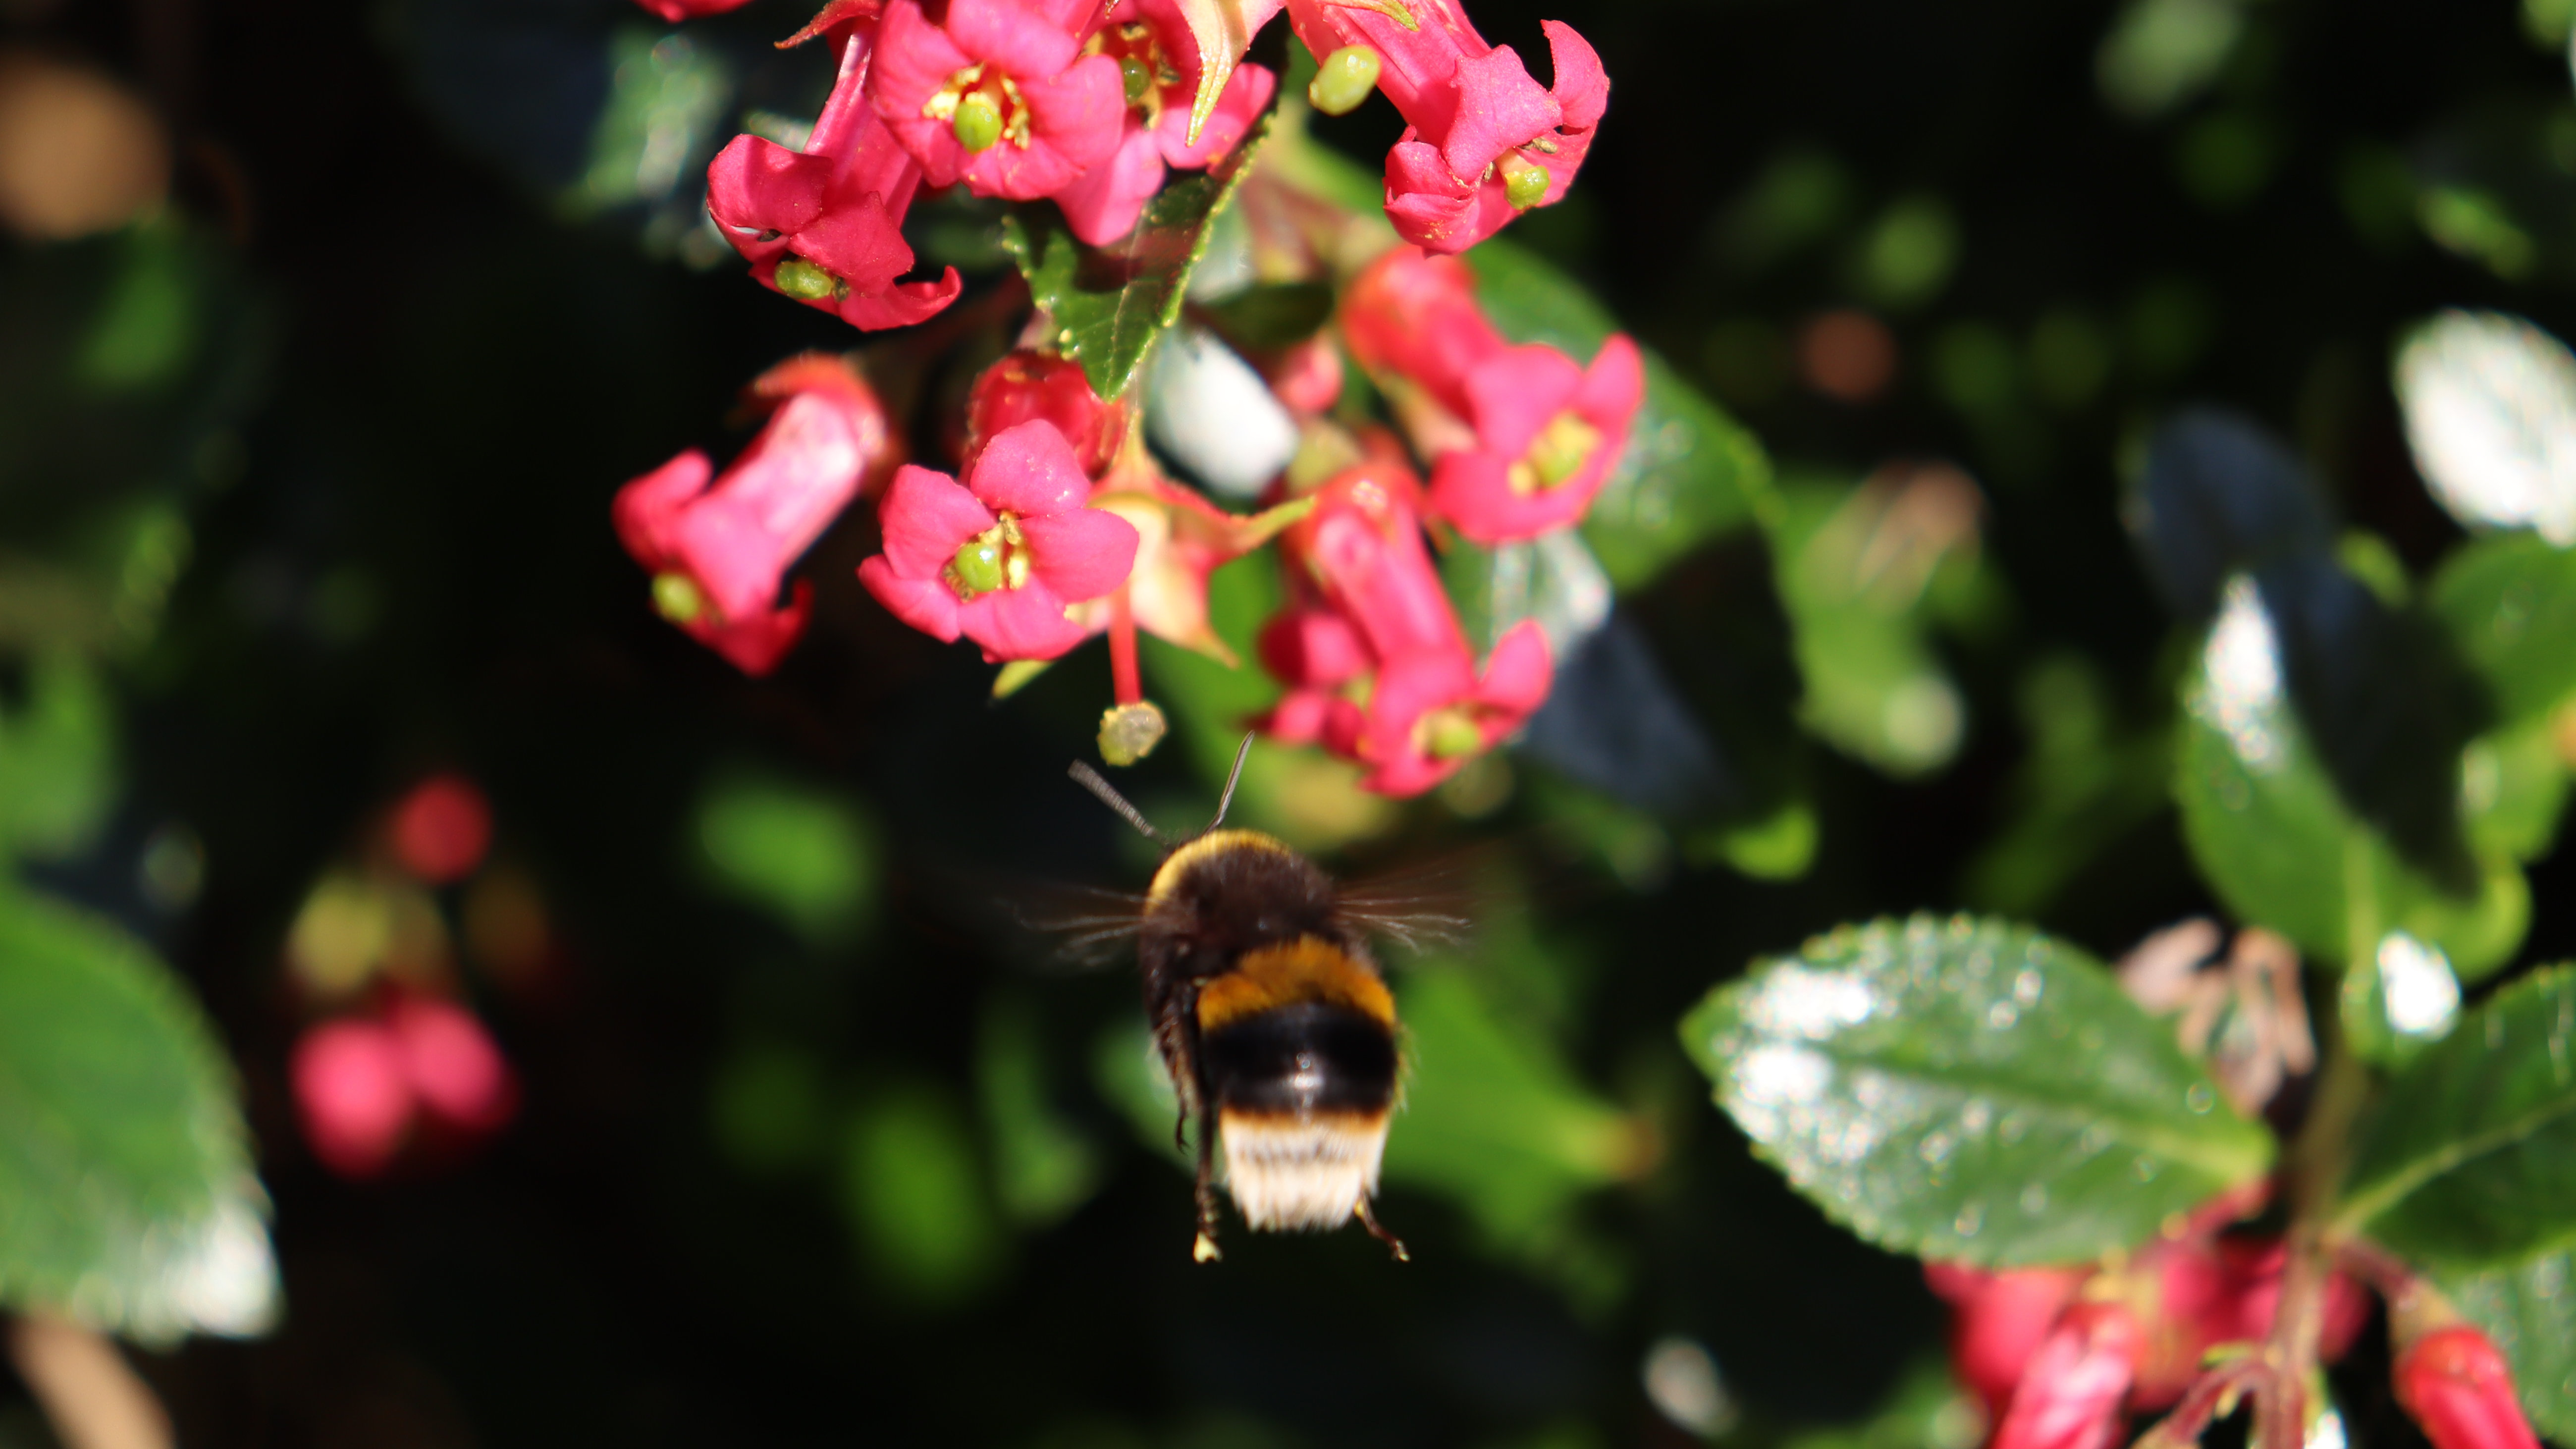 A bee flying straight towards a group of pink flowers.